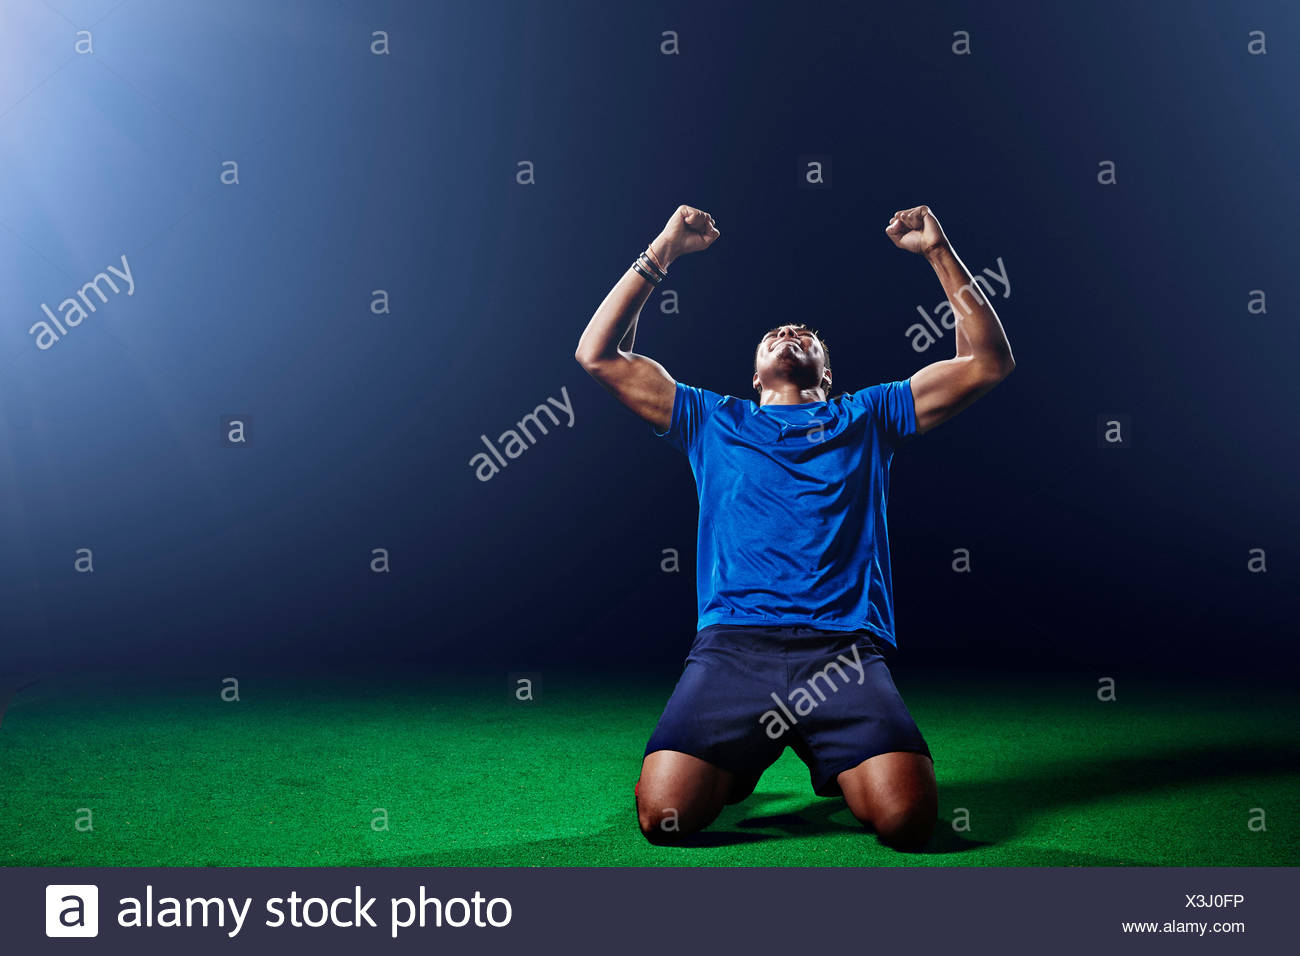 Male soccer player kneeling with arms raised - Stock Image